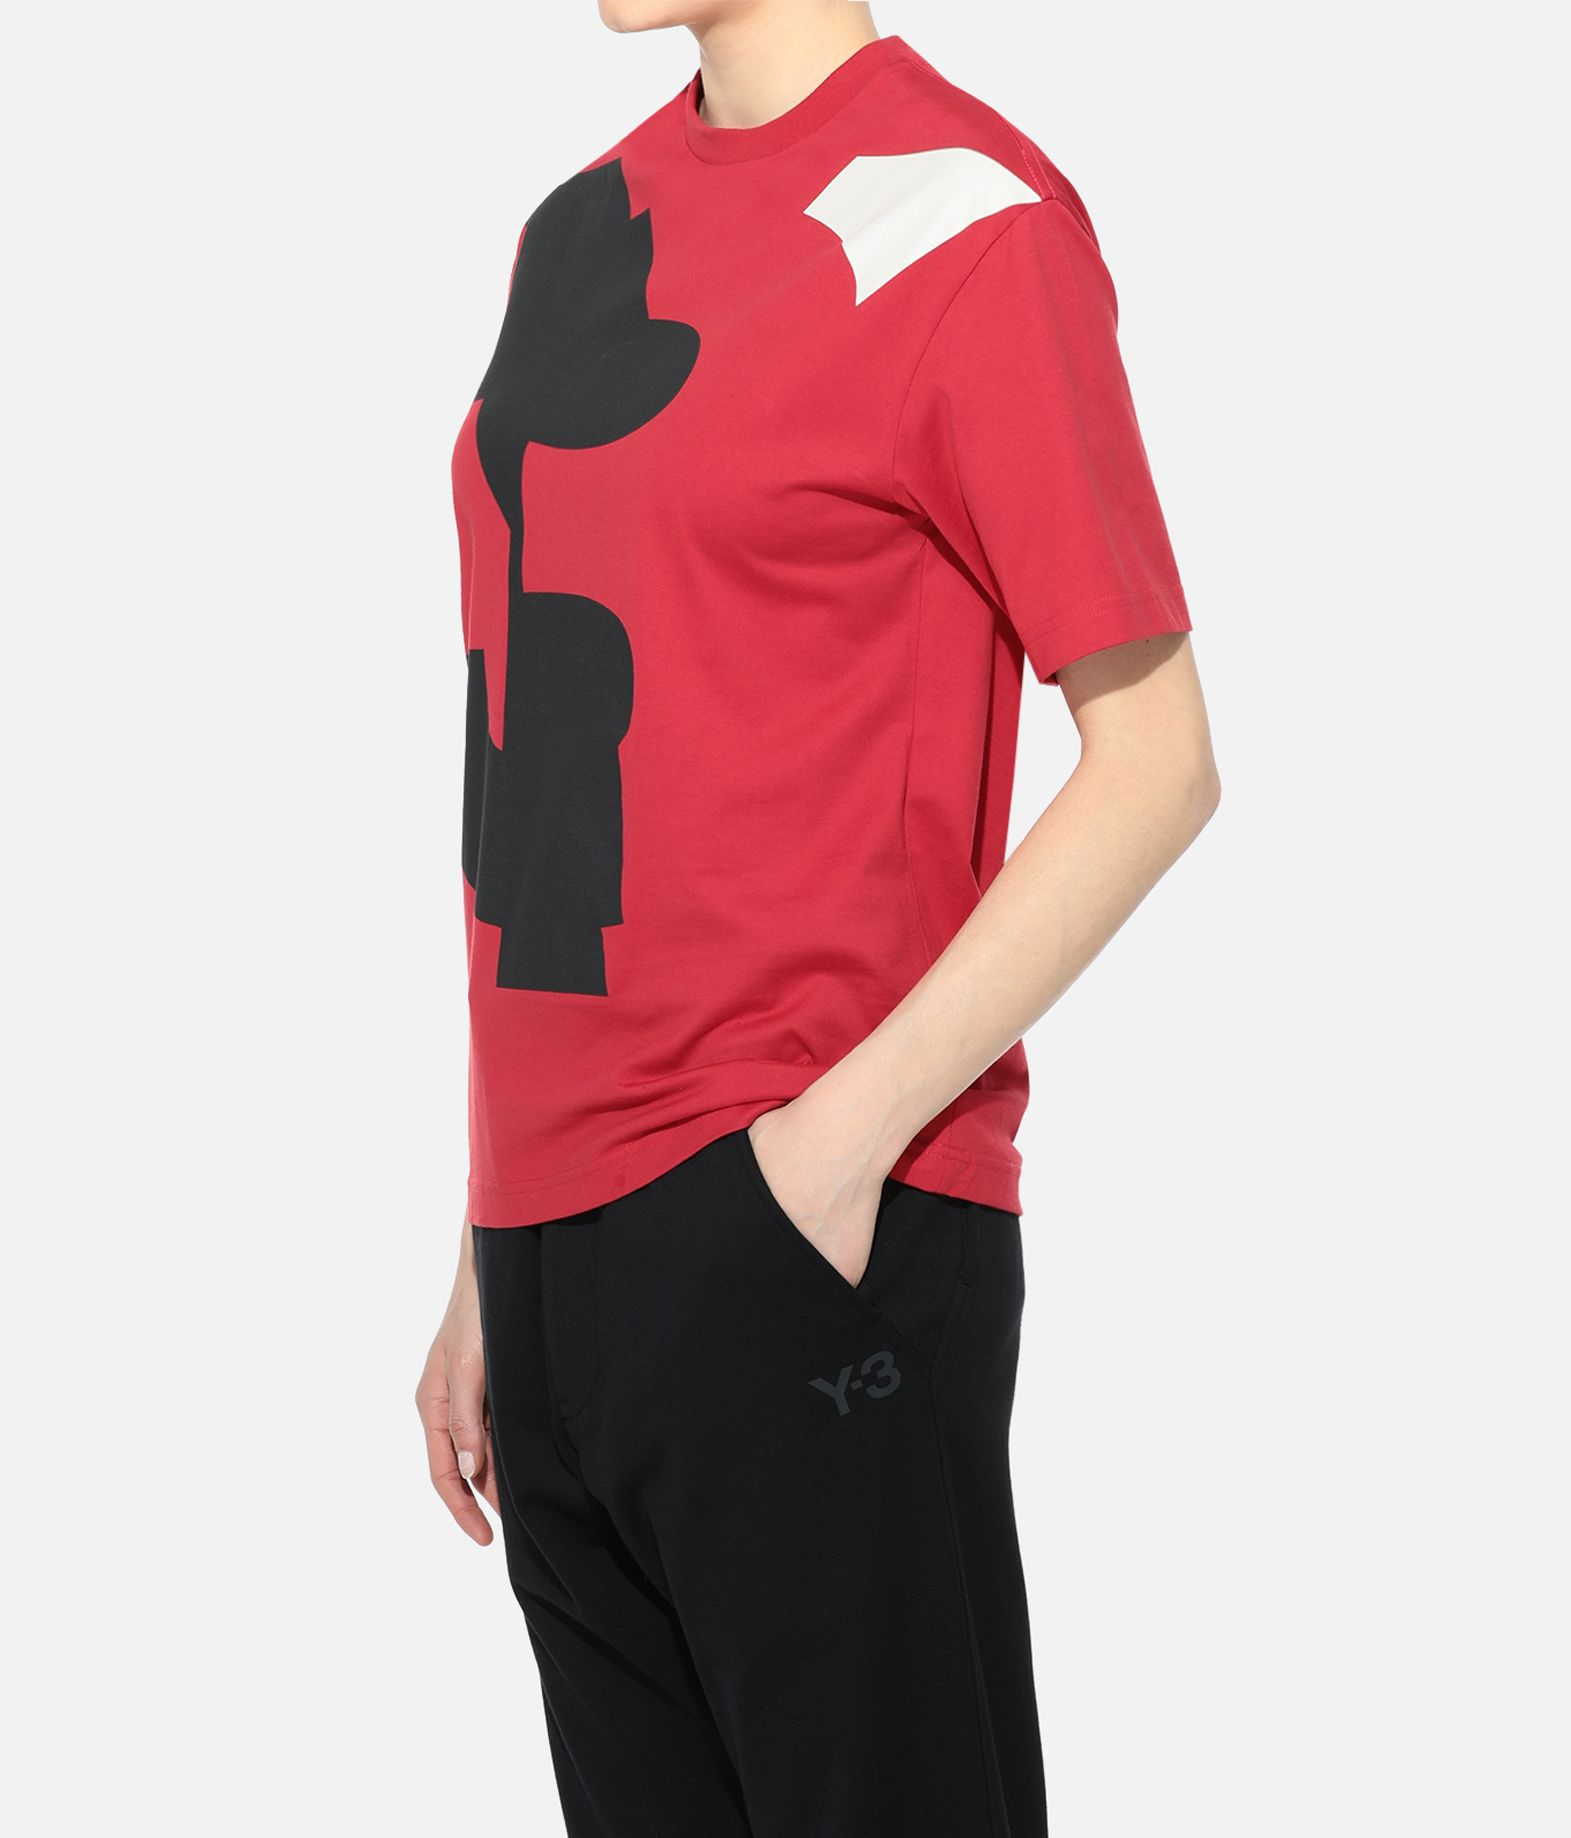 Y-3 Y-3 GRAPHIC TEE Short sleeve t-shirt Woman e